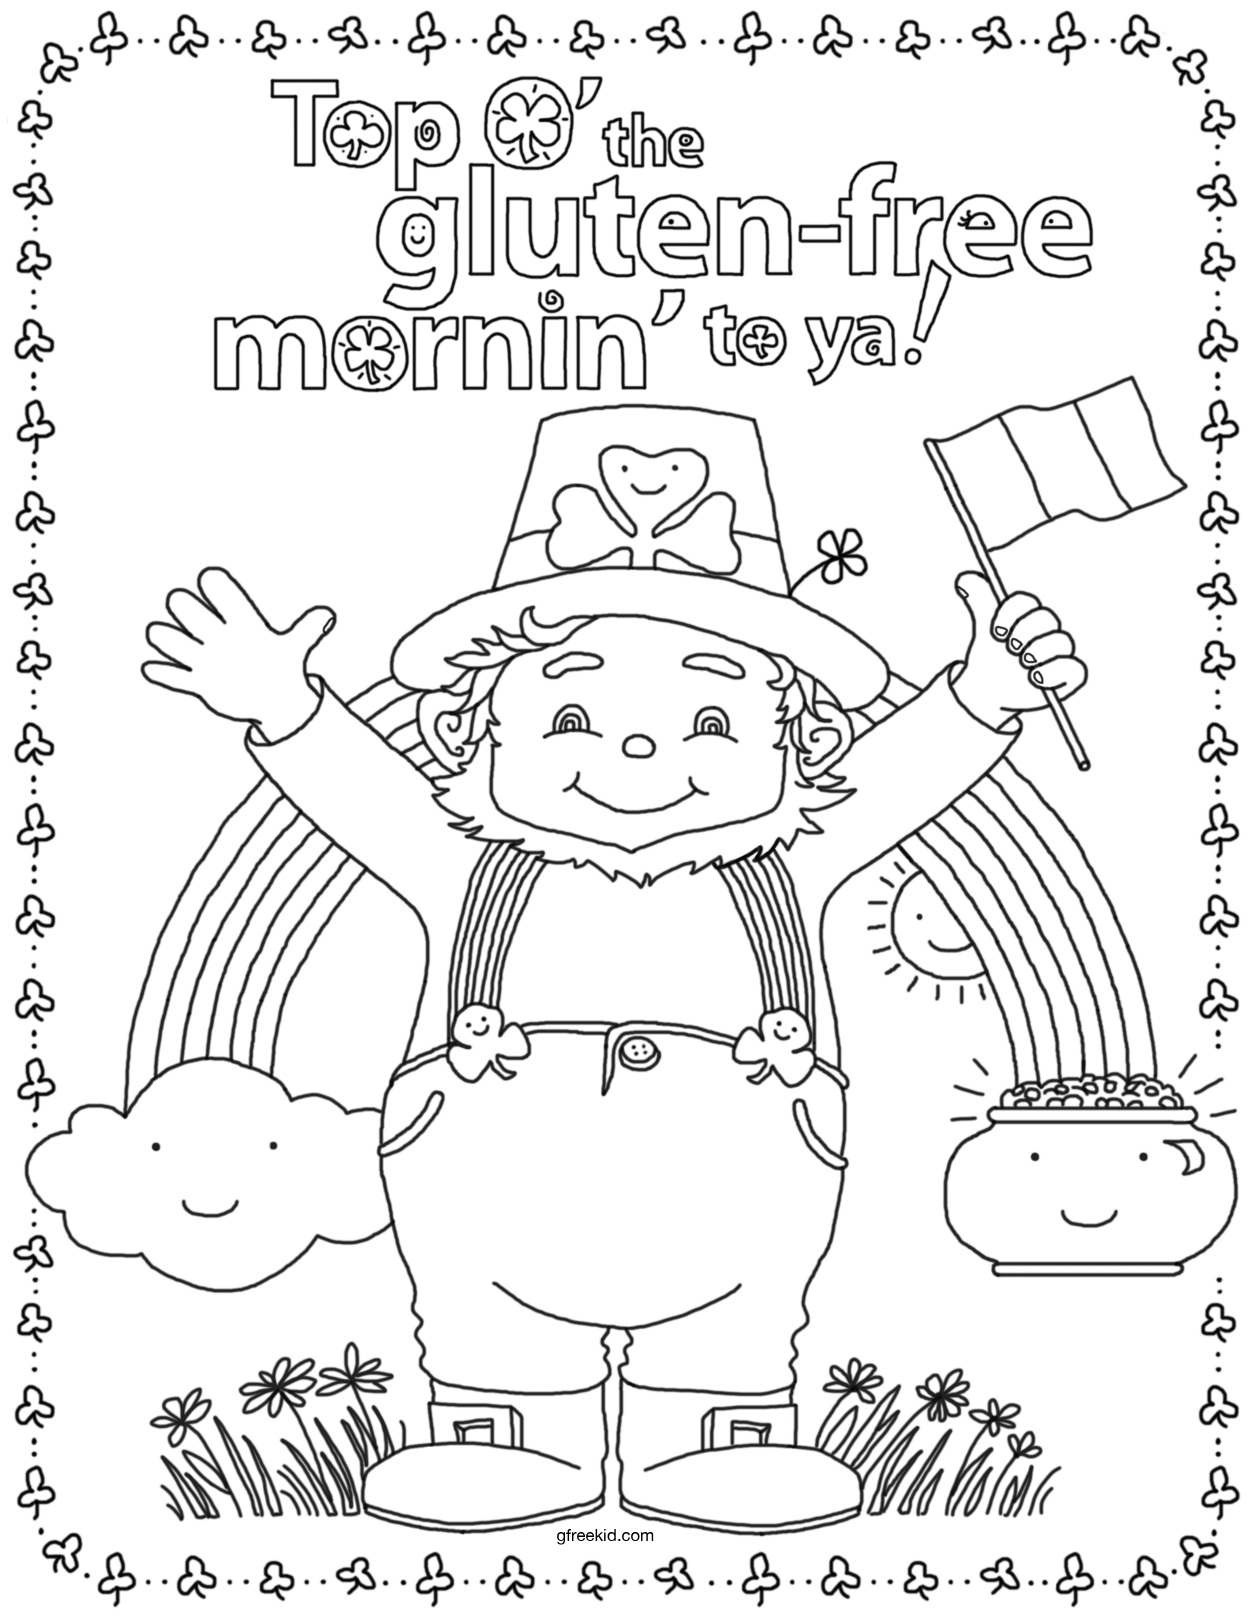 st patricks day coloring pages simple st patricks day ideas and coloring page for pages st patricks coloring day